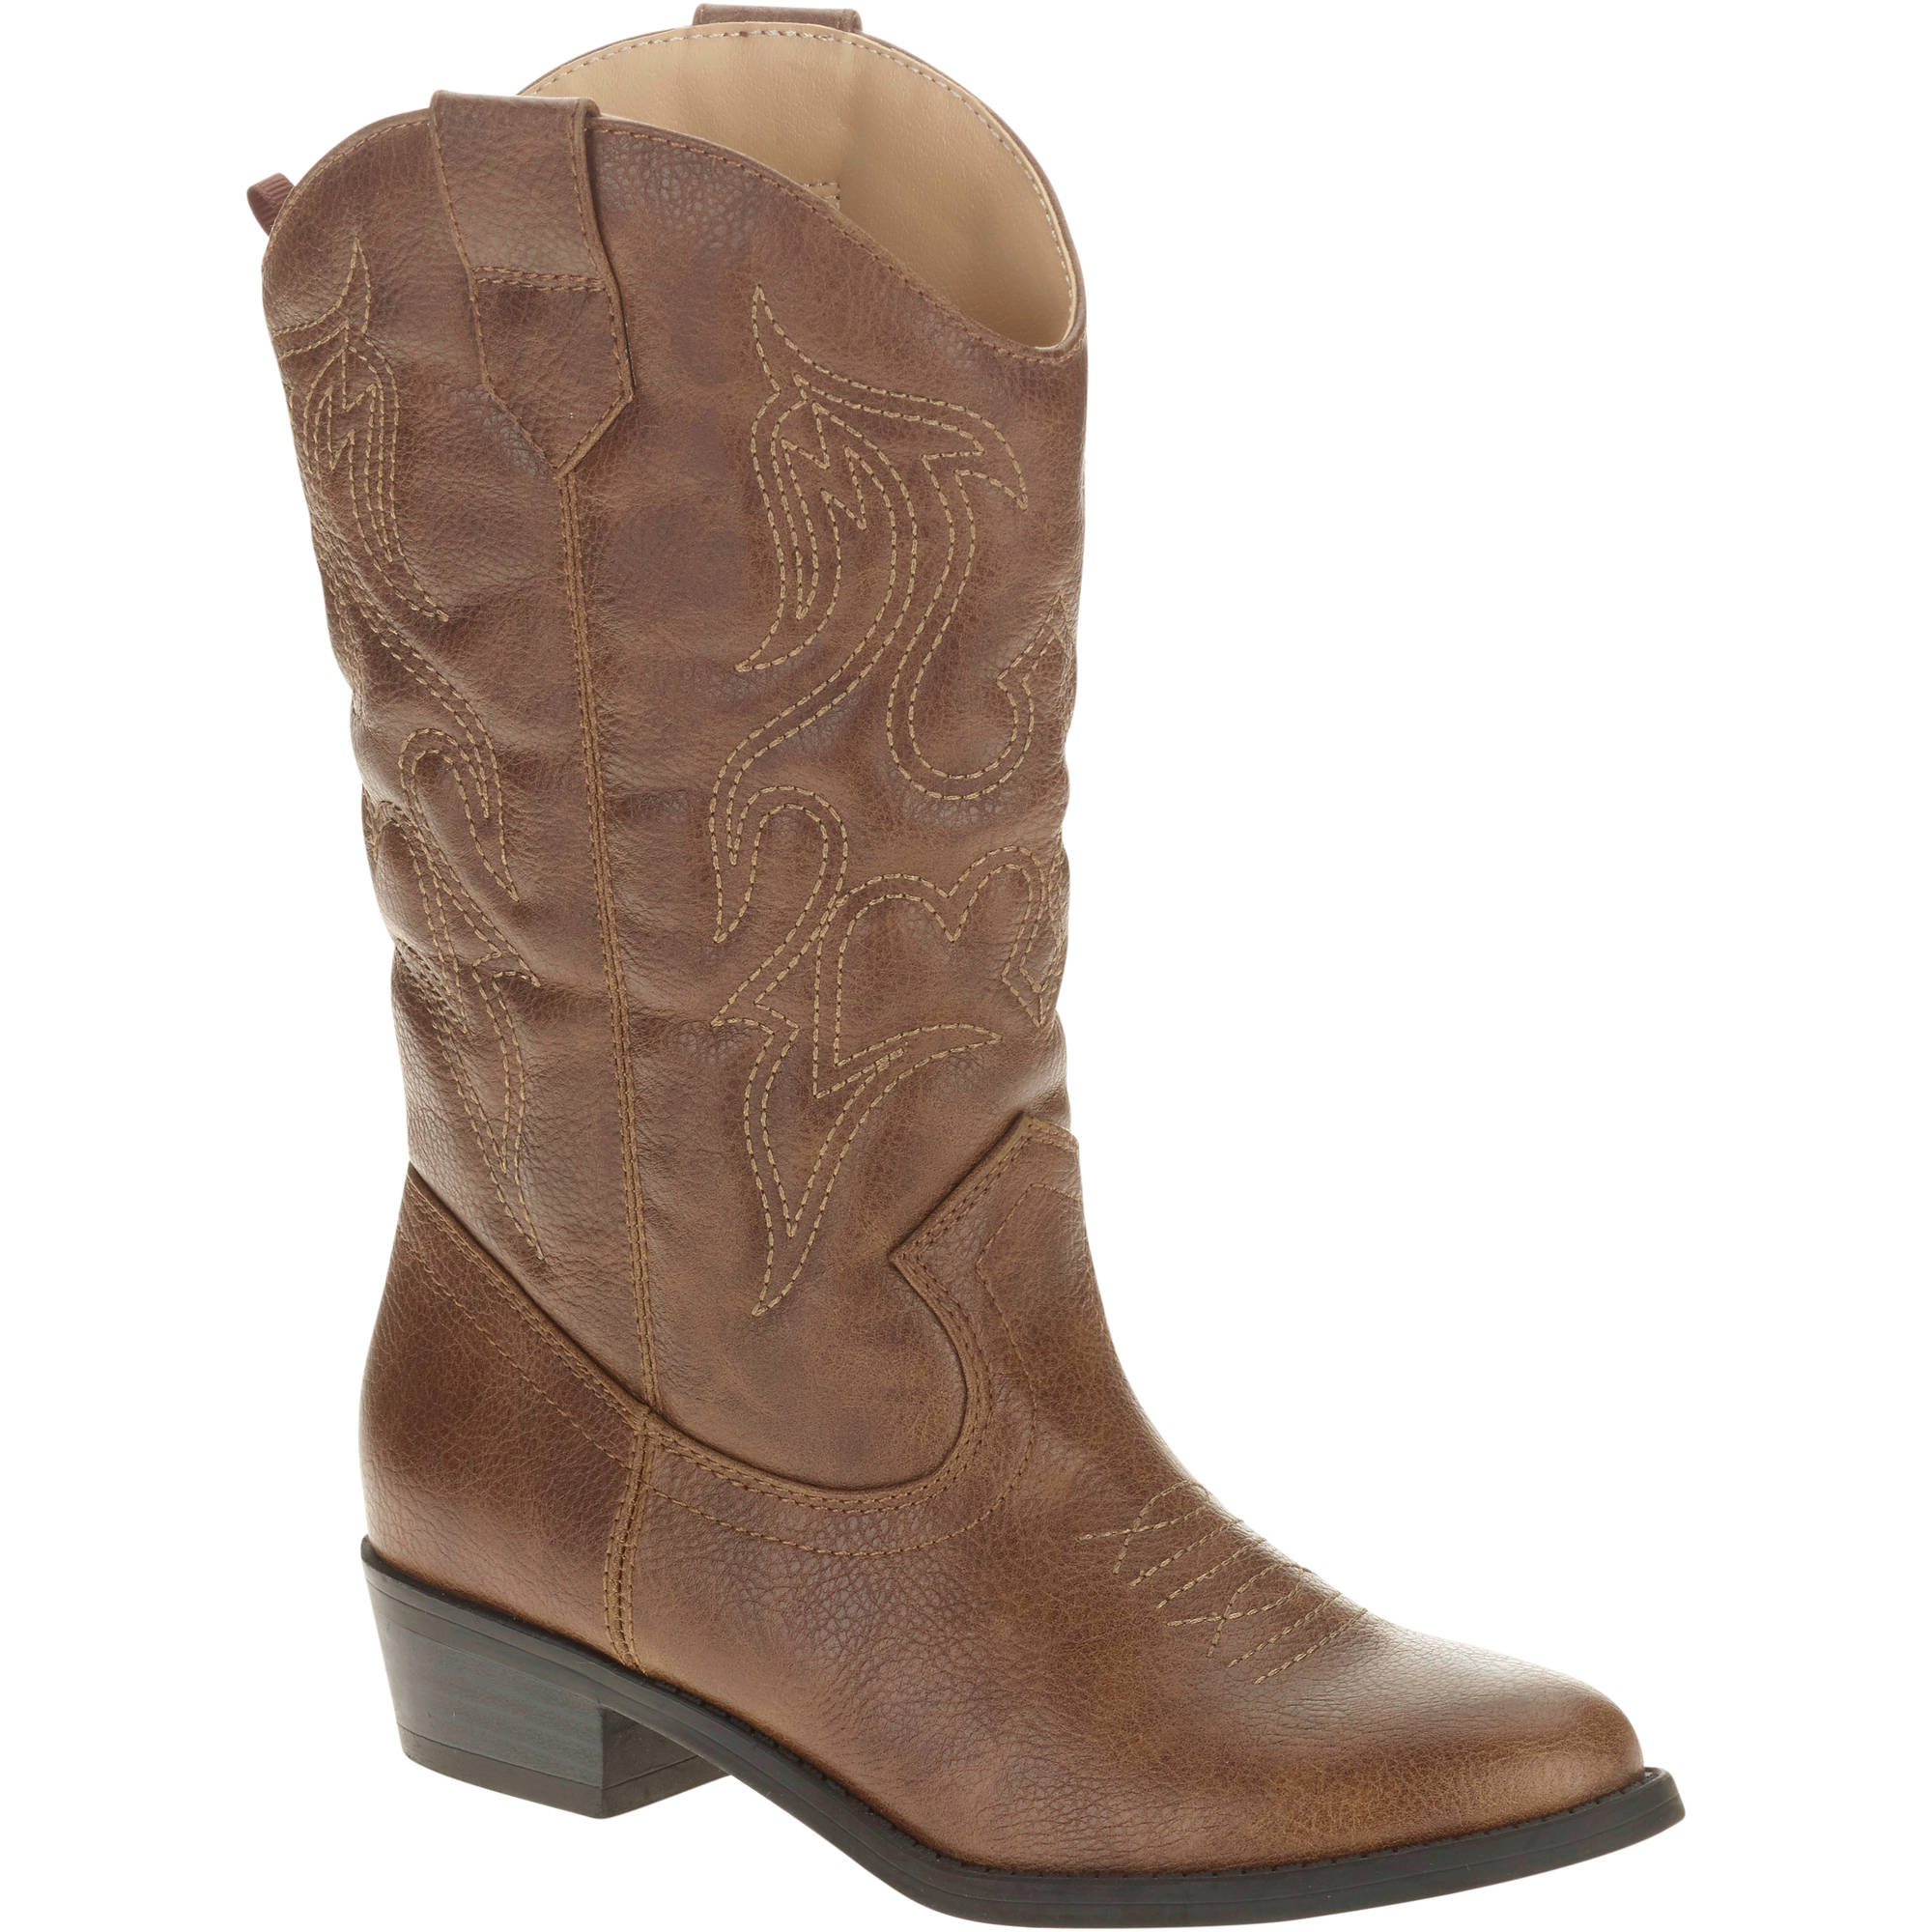 Faded Glory Girls' Cowgirl Boot - Walmart.com